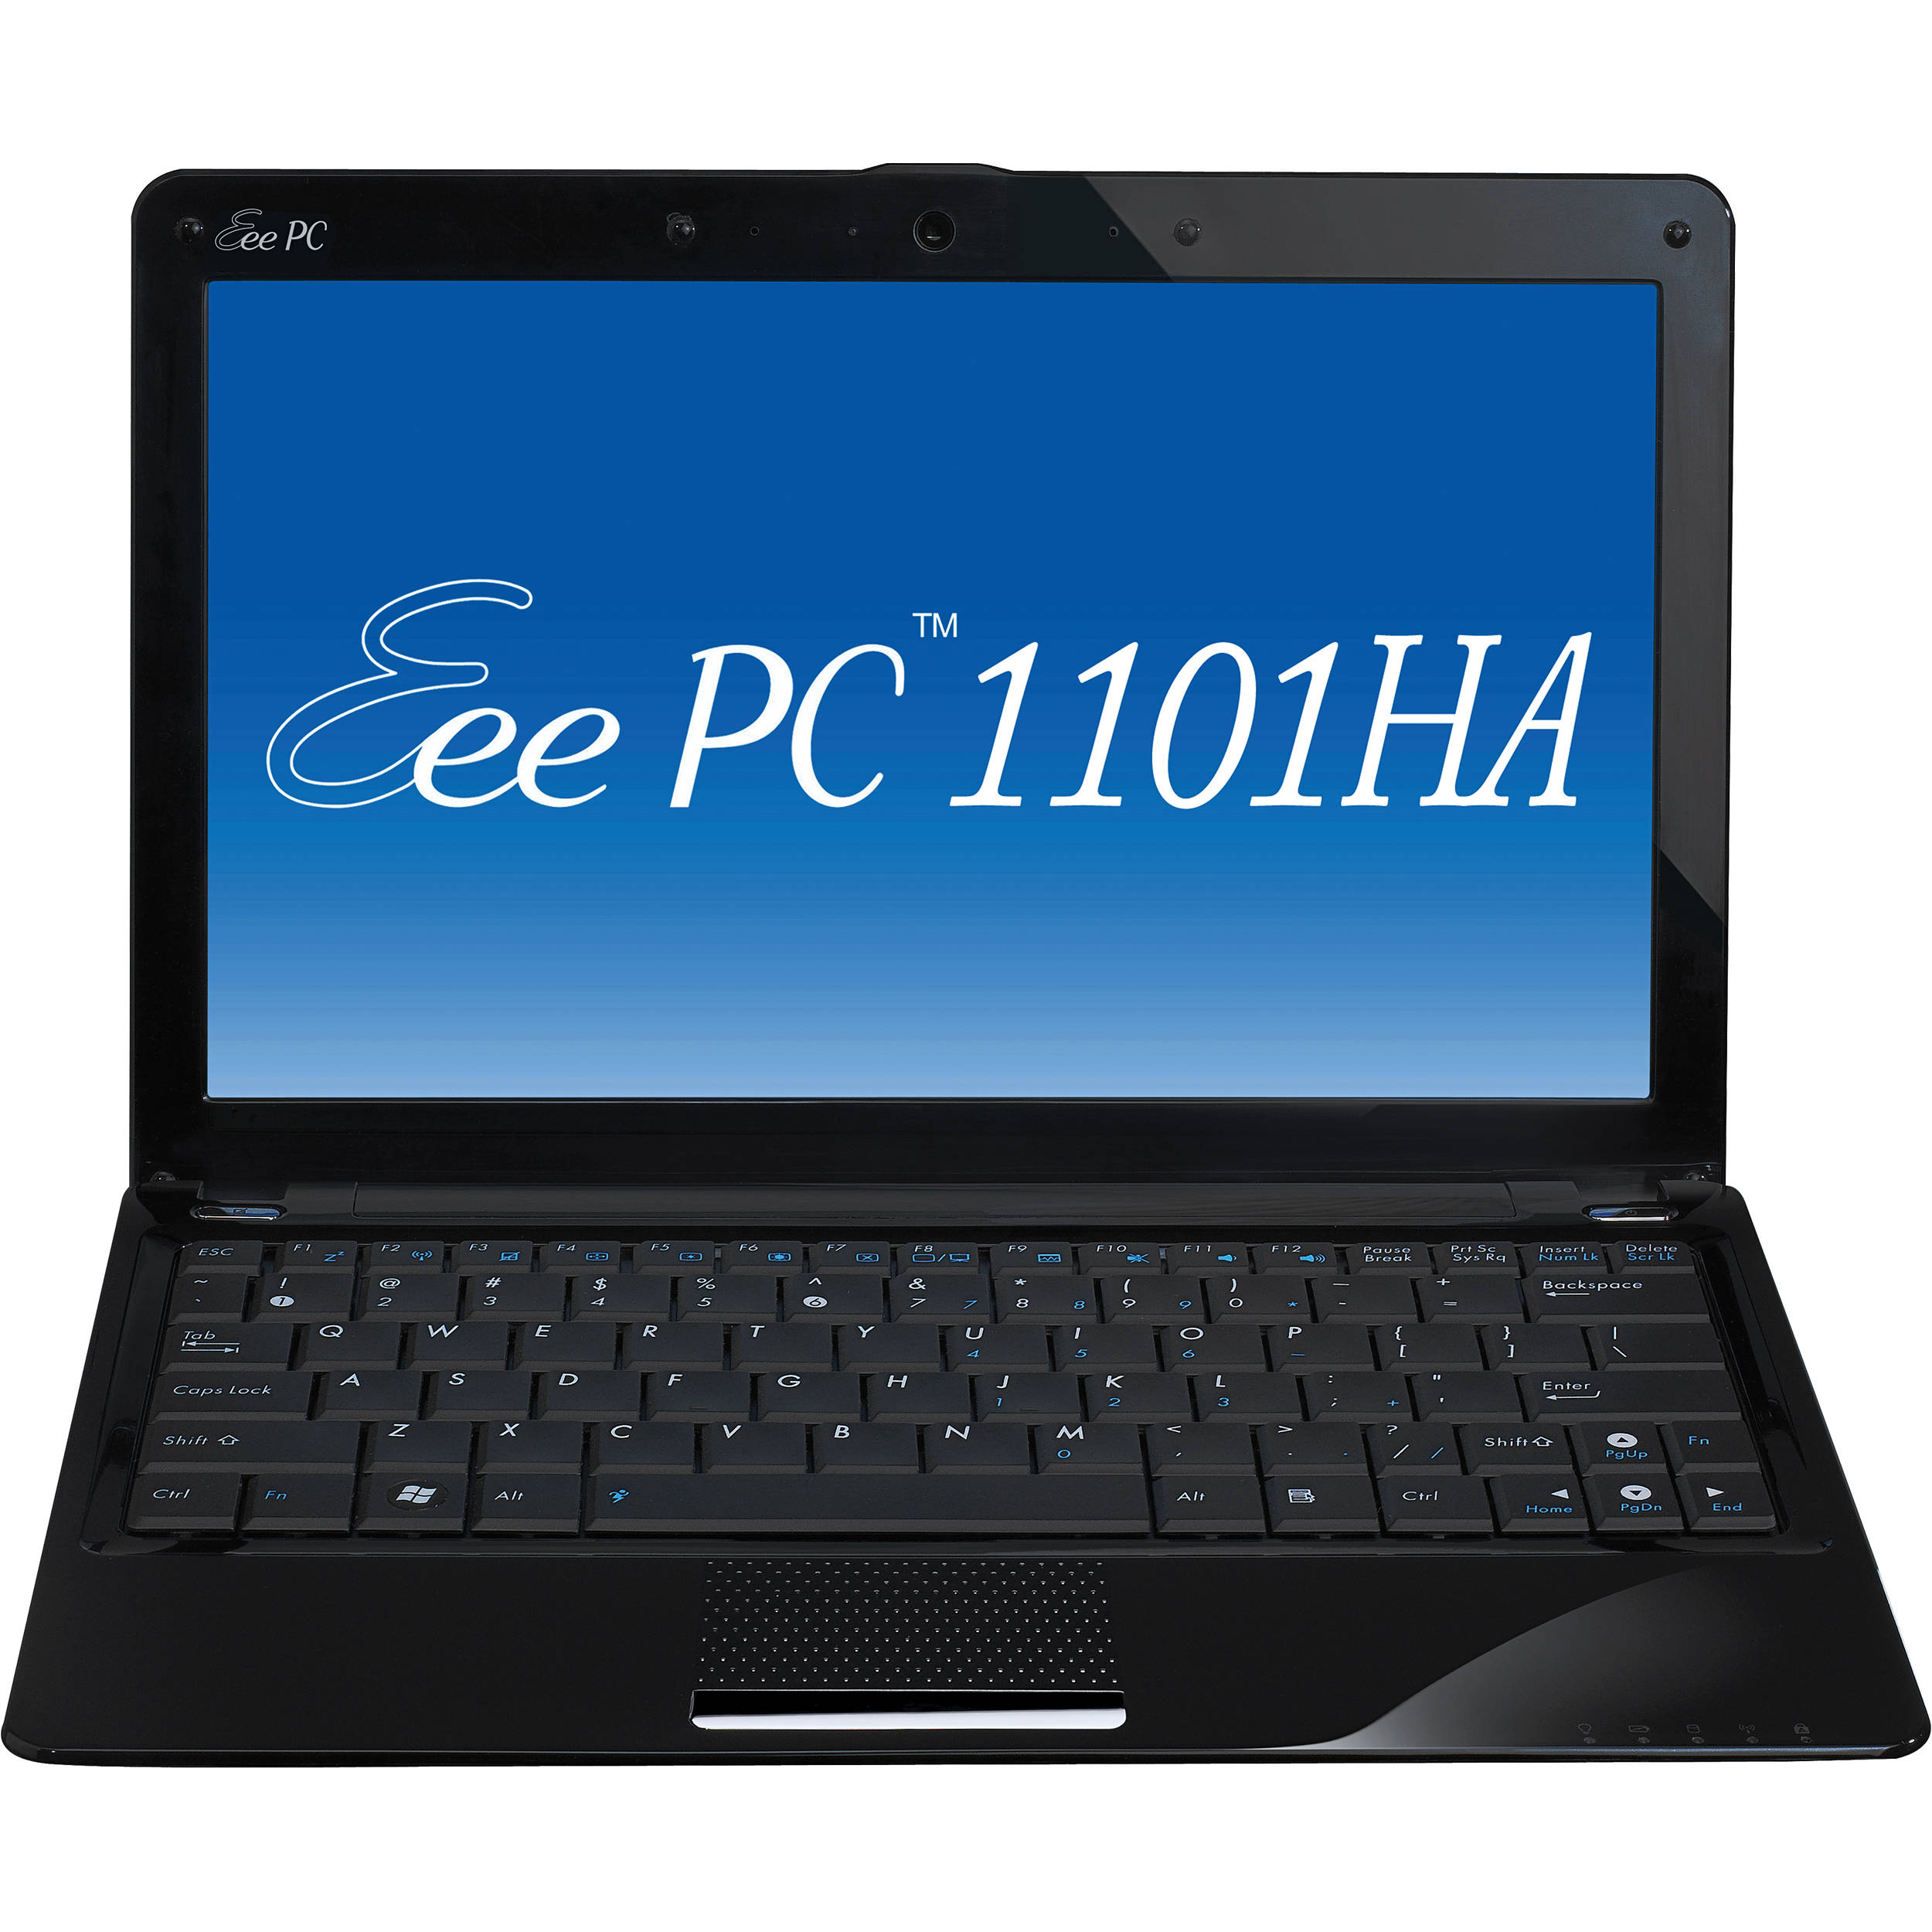 ASUS EEE PC 1101HA SEASHELL NETBOOK CAMERA DRIVER DOWNLOAD